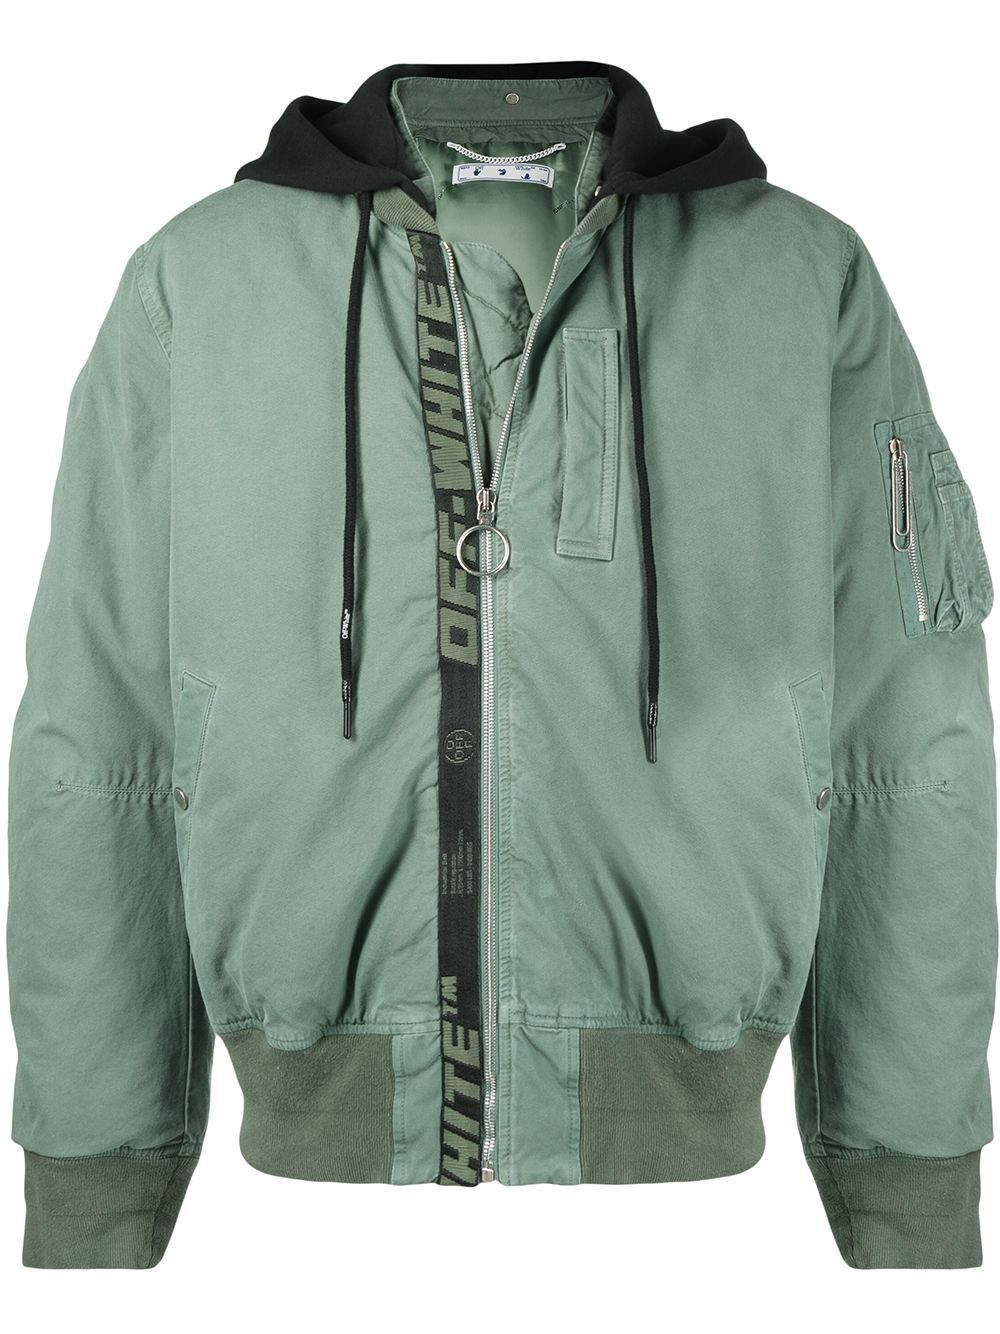 Off-White OFF-WHITE MEN'S GREEN COTTON OUTERWEAR JACKET